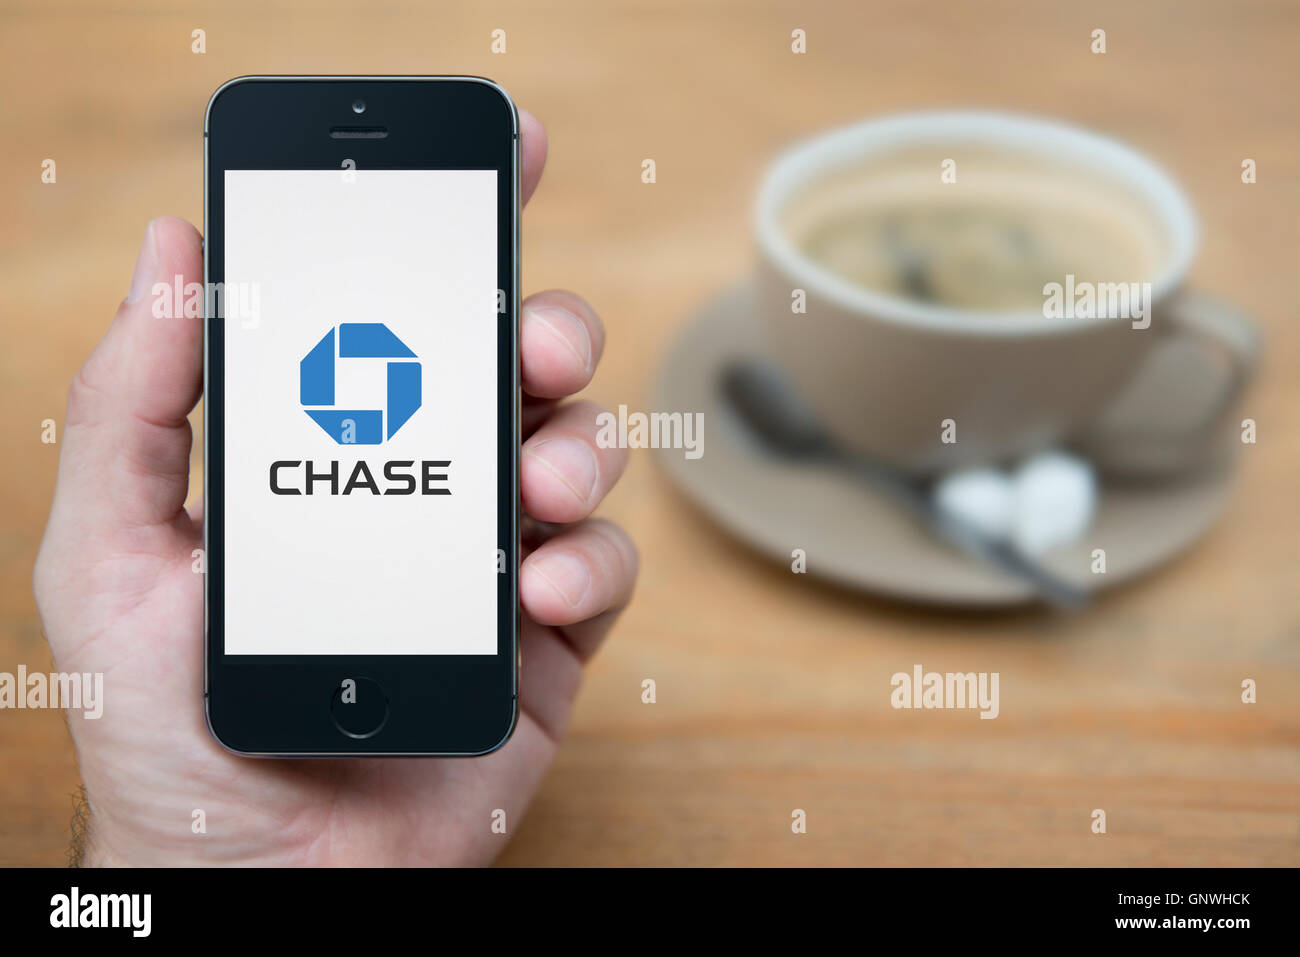 Wiring Instructions For Chase Bank Morgan Page Stock Photos Images Alamy A Man Looks At His Iphone Which Displays The Logo While Sat With